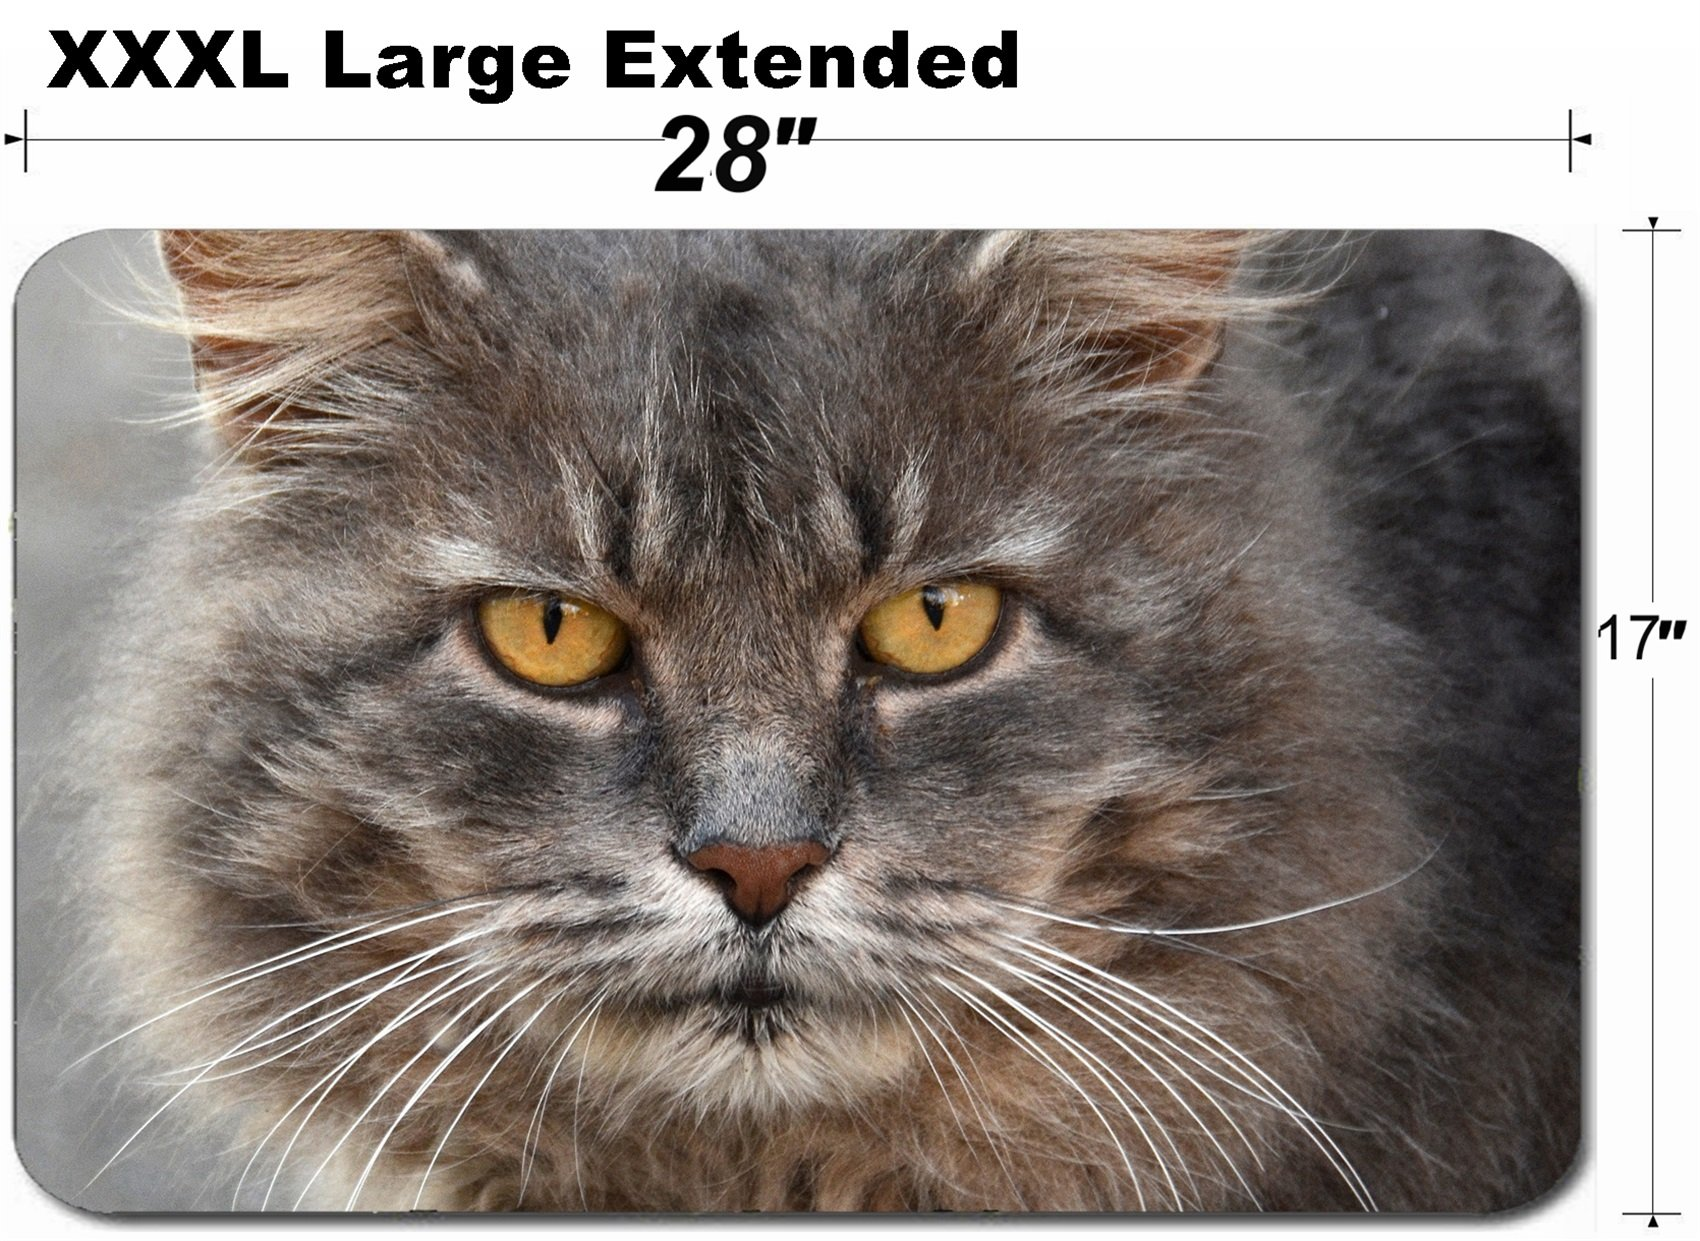 MSD Large Table Mat Non-Slip Natural Rubber Desk Pads Image ID: 37637892 Close up Portrait of a Grey cat